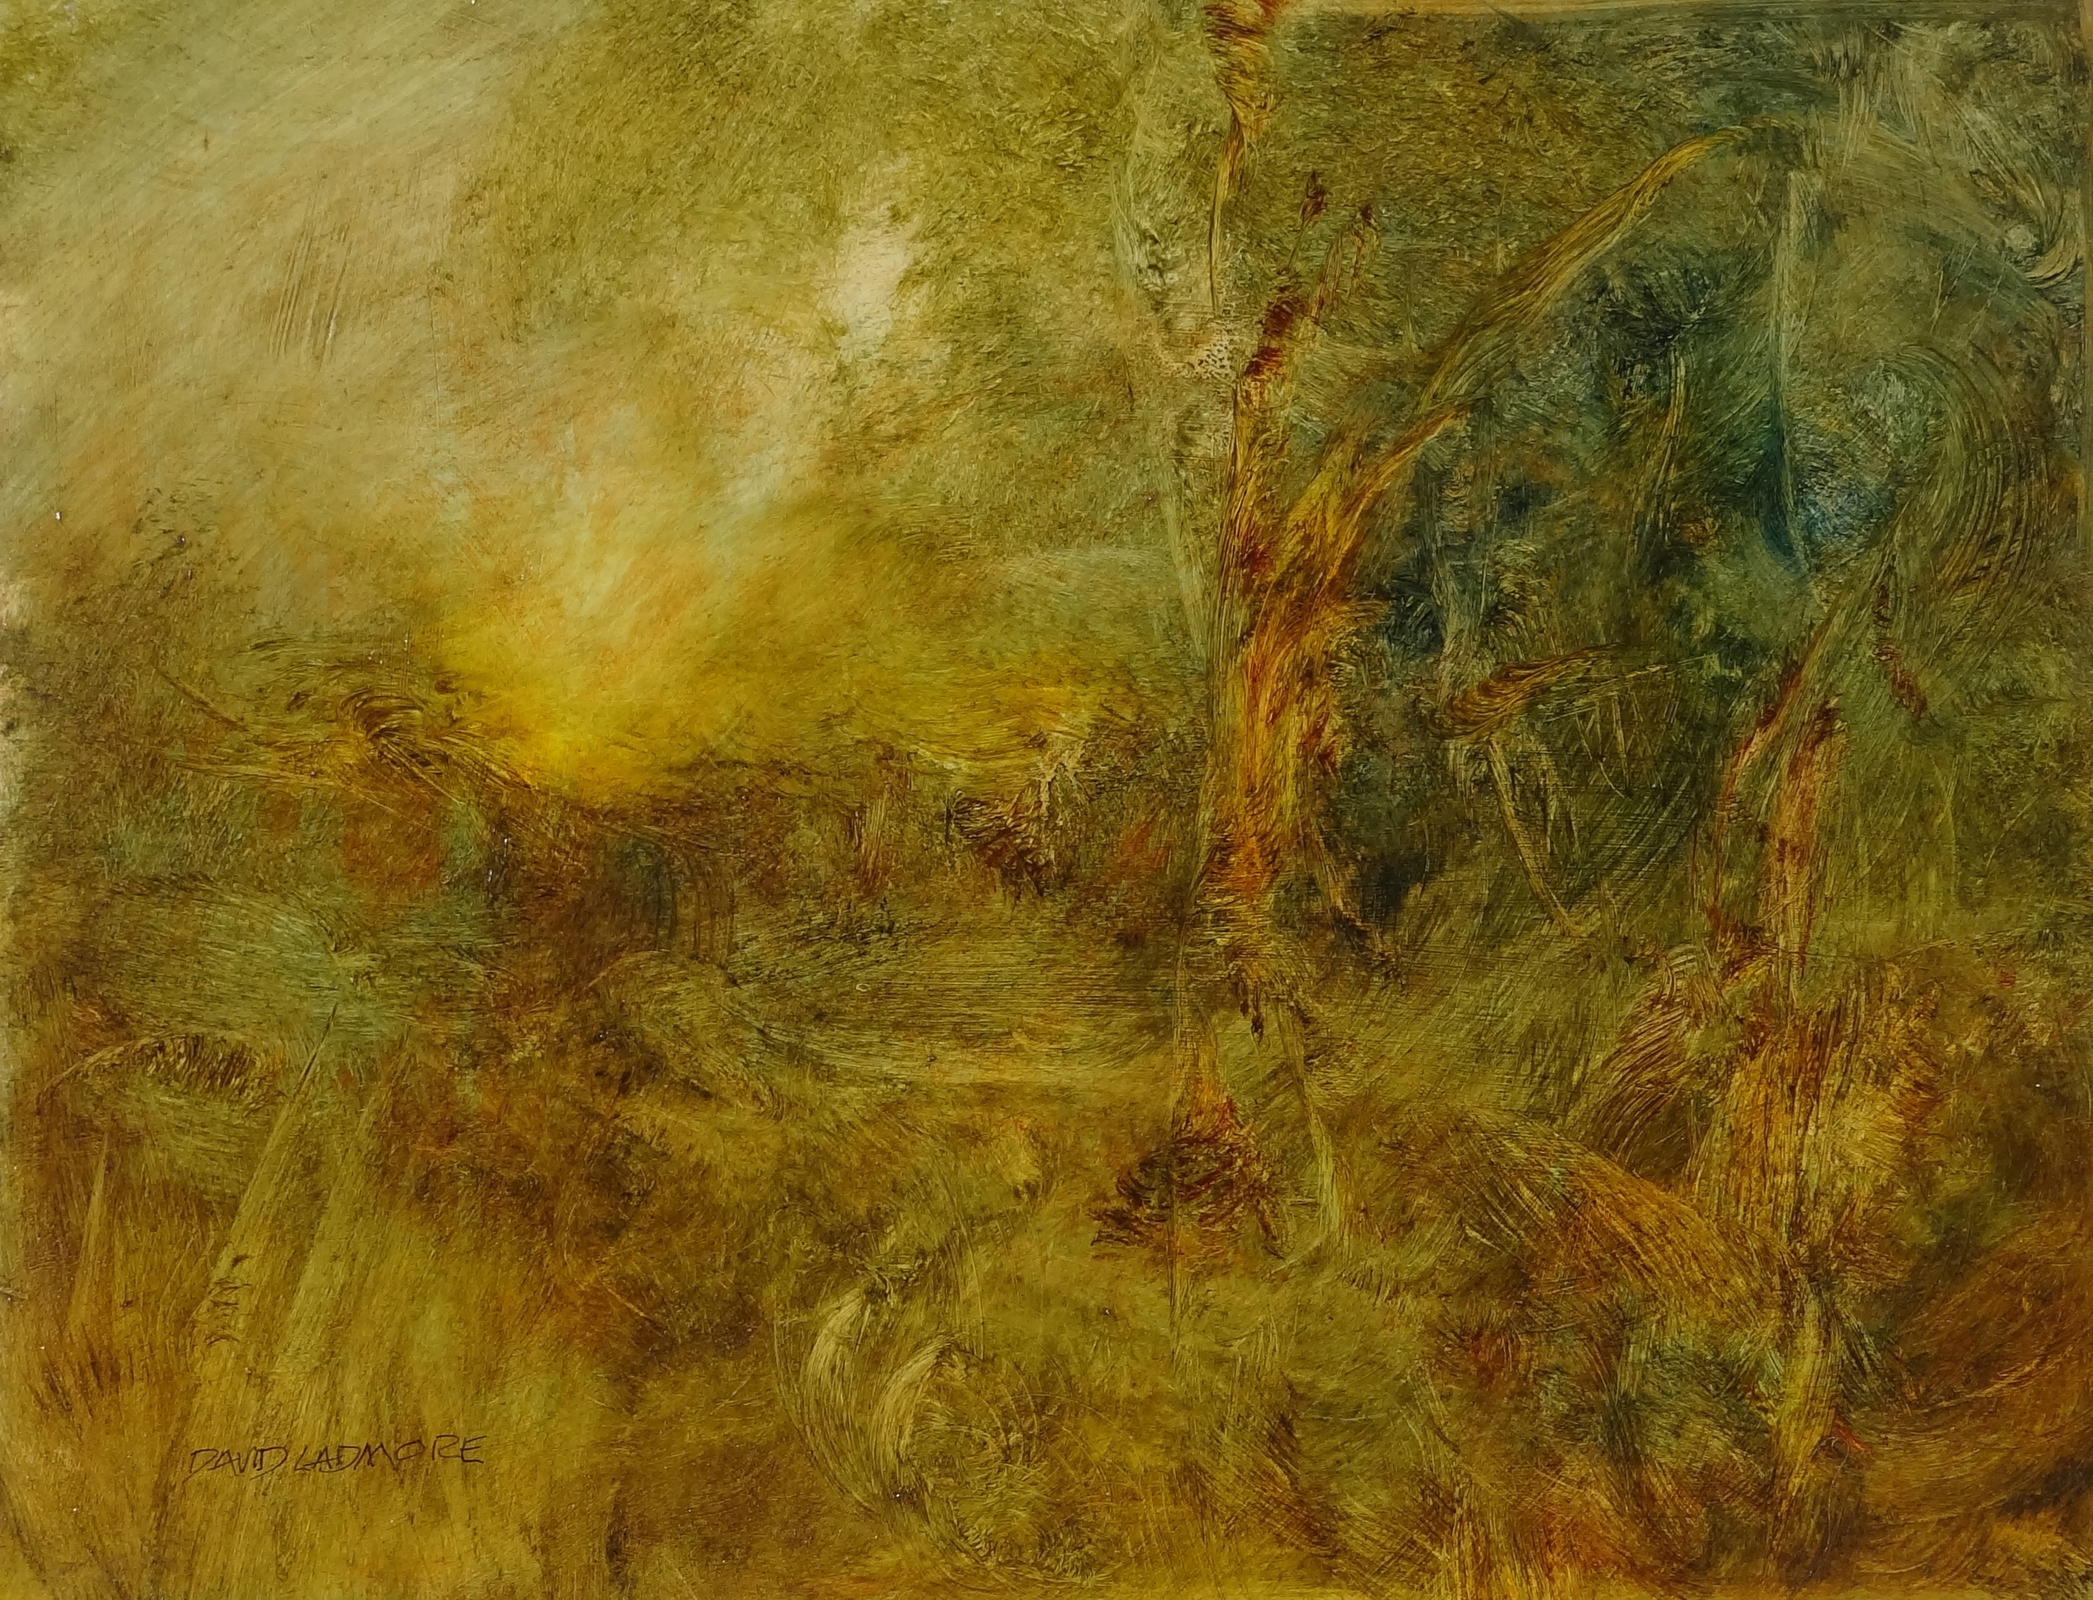 image of landscape oil painting Warm Earth 72 by David Ladmore